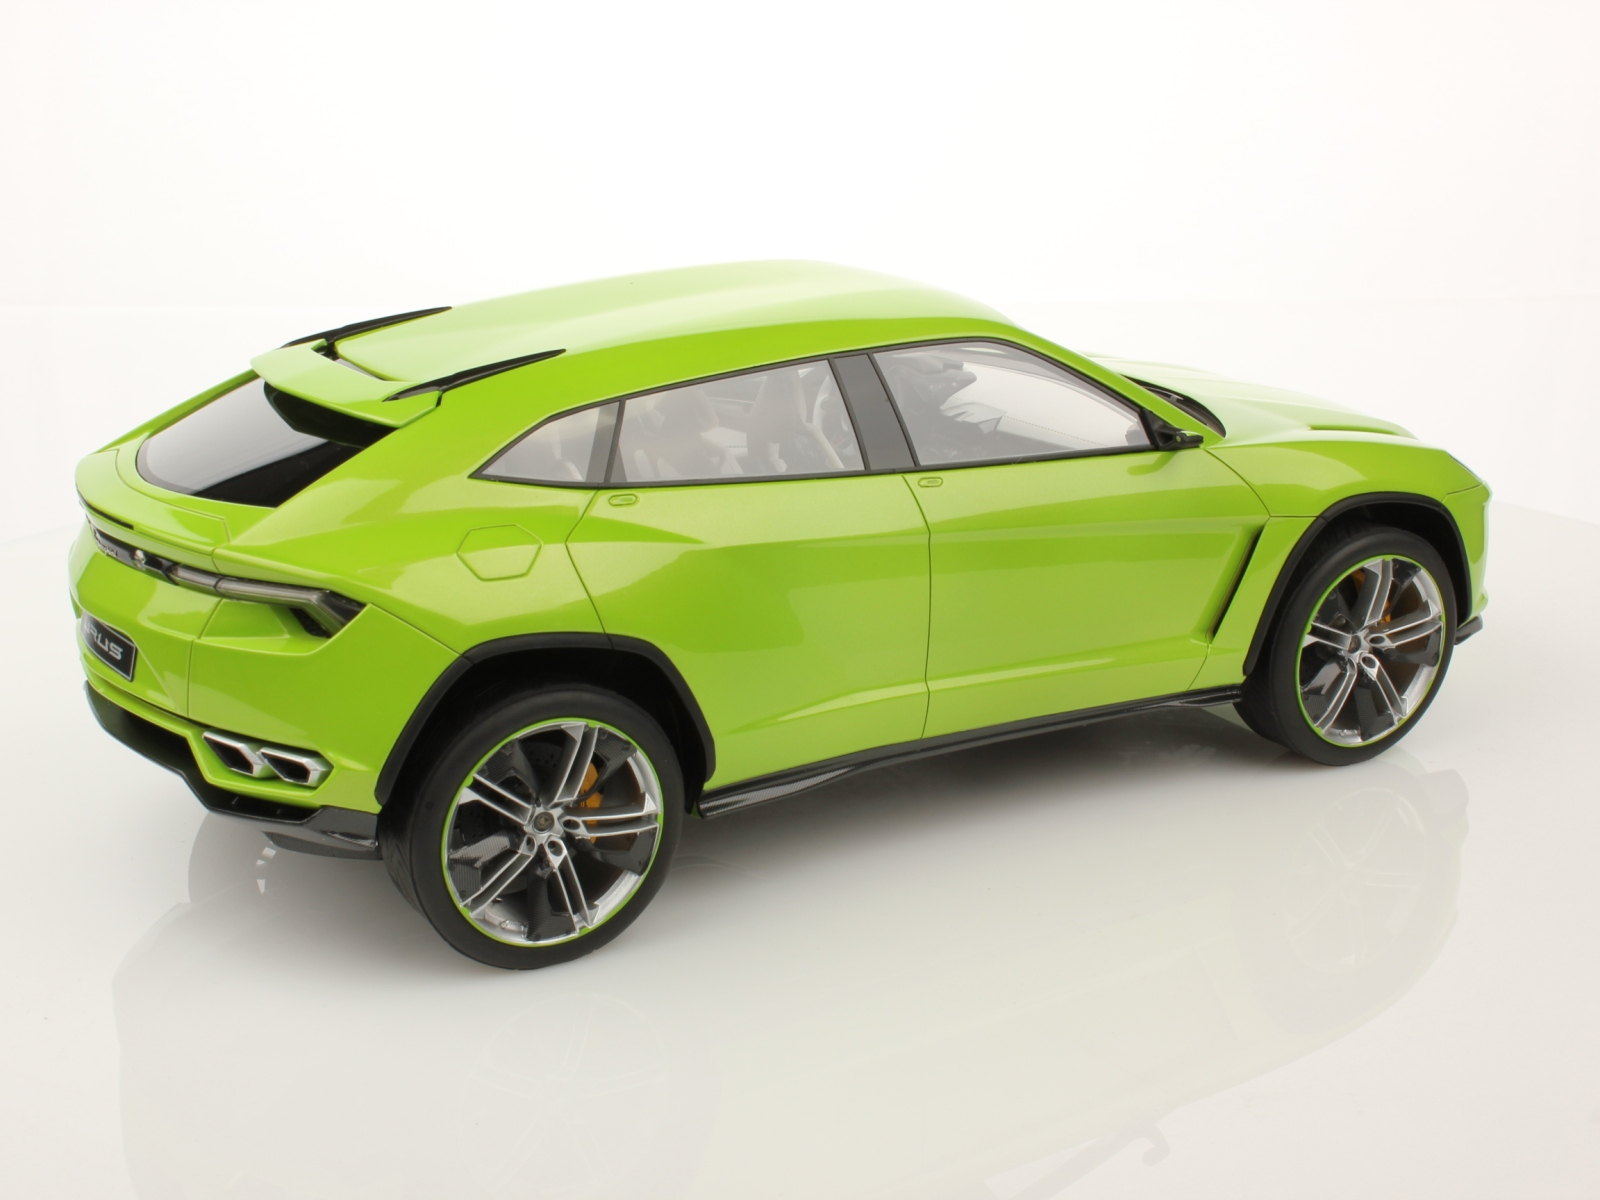 Lamborghini Urus Production Officially Confirmed for 2018 ...